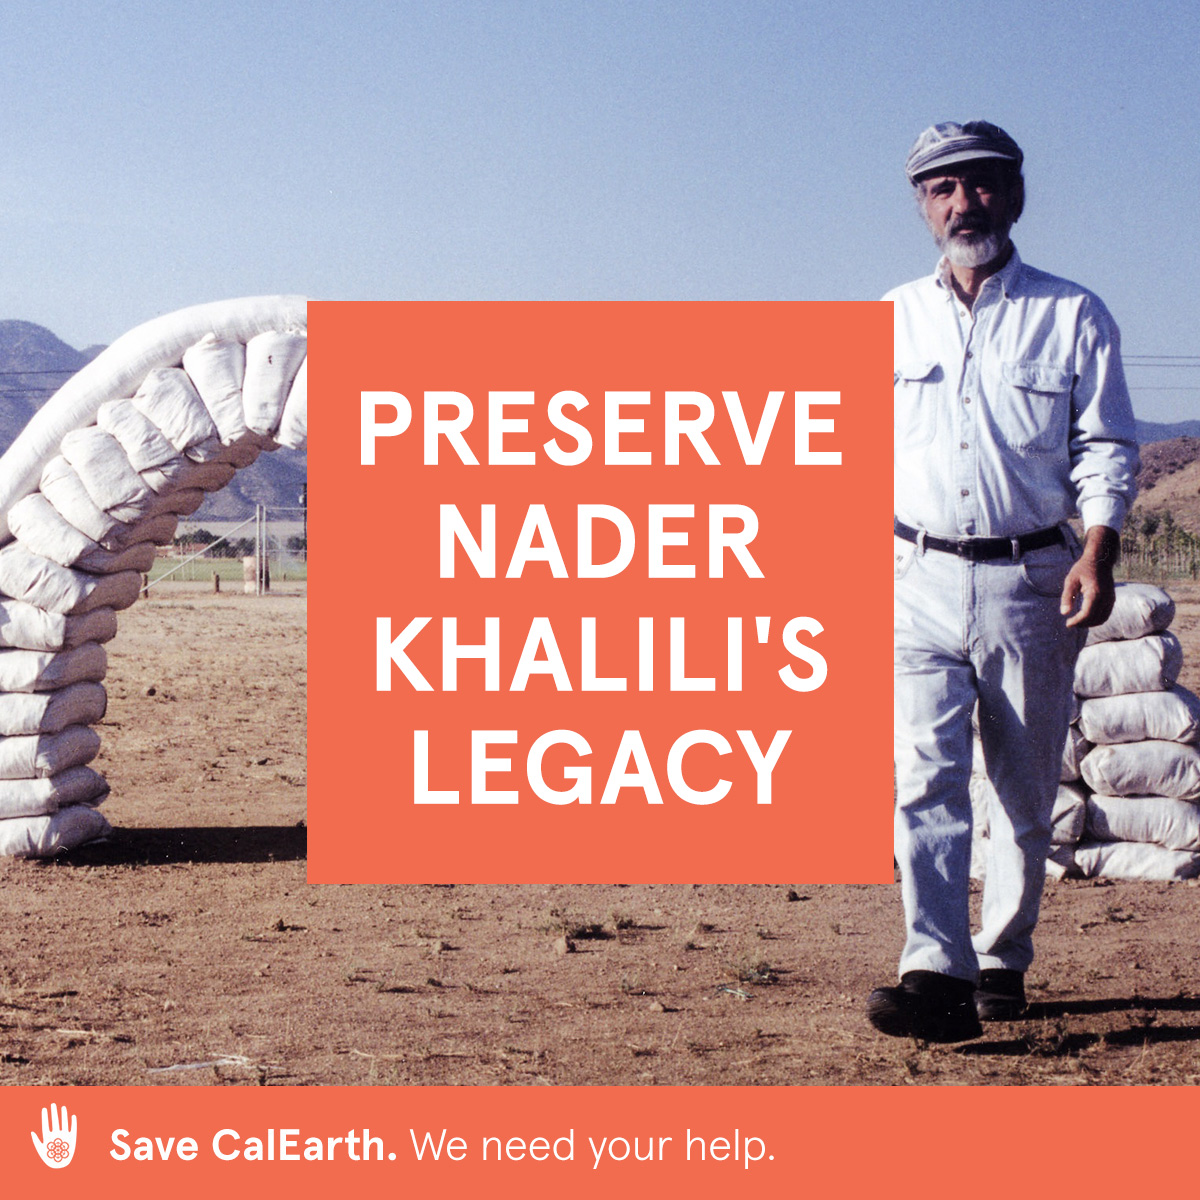 """My quest became more meaningful when my goals met with others' needs and goals. And I became important, in my own heart, only when I reached the others, as a drop of water becomes important only when it reaches the sea."""" -Nader Khalili. Help save CalEarth and the future of Nader Khalili's legacy.  calearth.org/donate   #calearth #savecalearth #superadobe"""